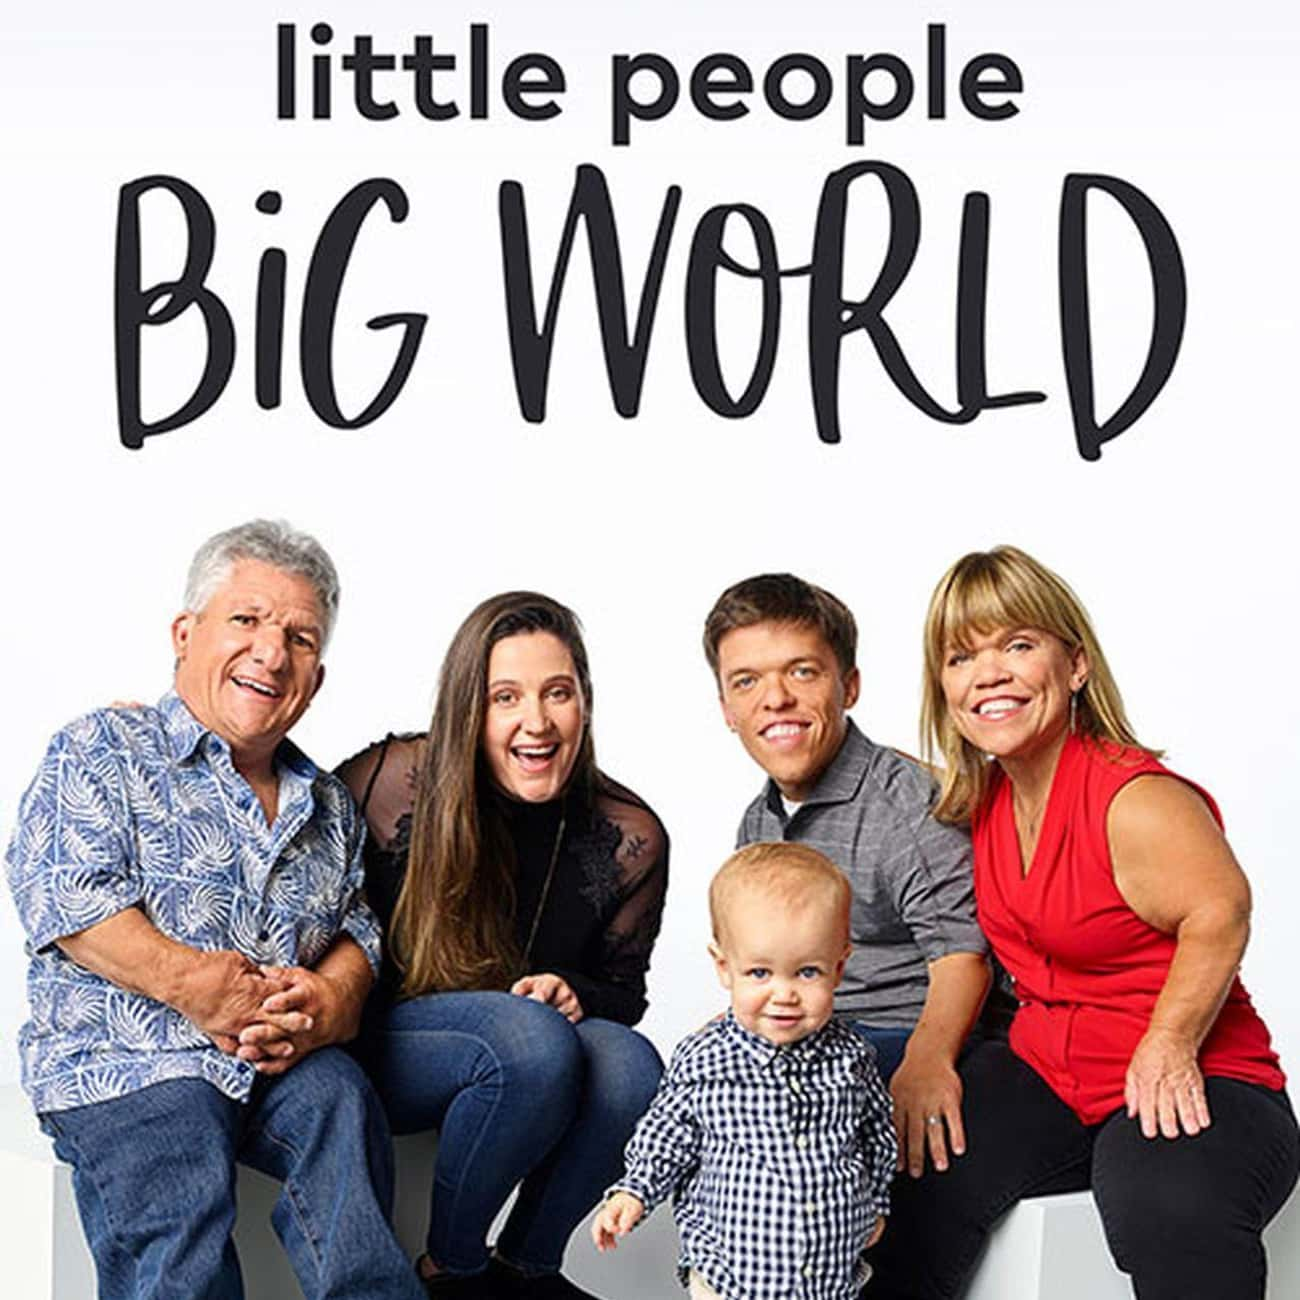 Little People, Big World is listed (or ranked) 1 on the list Learn Something New From The Best Subculture Reality Shows